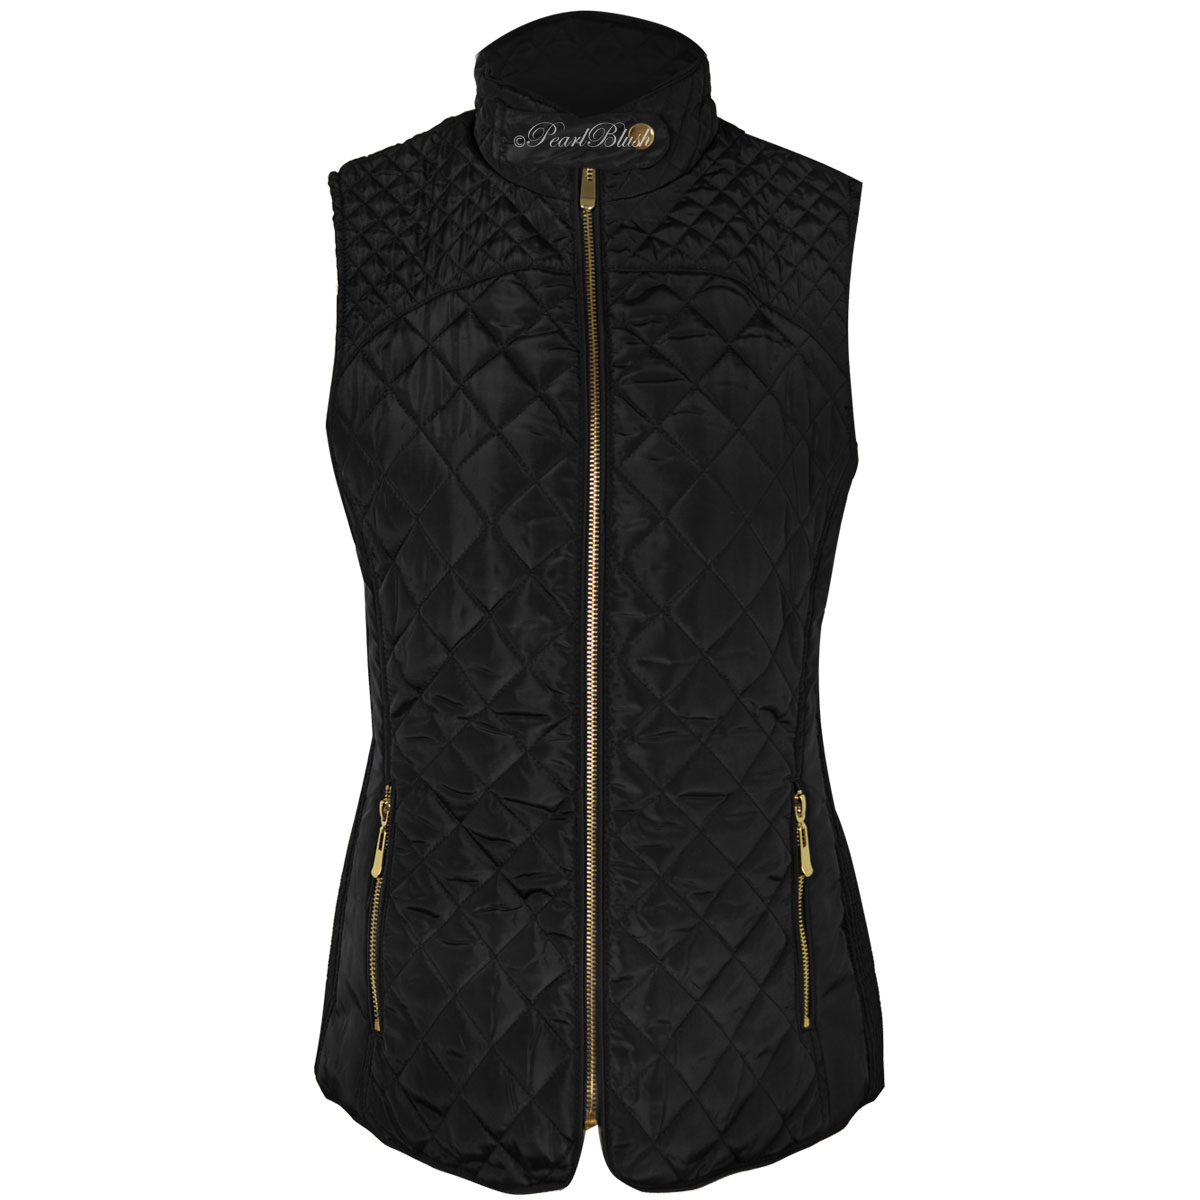 WOMEN'S PADDED GILETS. Layer up with one of our padded women's gilets for guaranteed core insulation and a protective shield from the wind on your next outdoor excursion. Although our CompressLite women's padded gilets are excellent core insulators, that doesn't stop you from compressing and compacting them away in your rucksack.